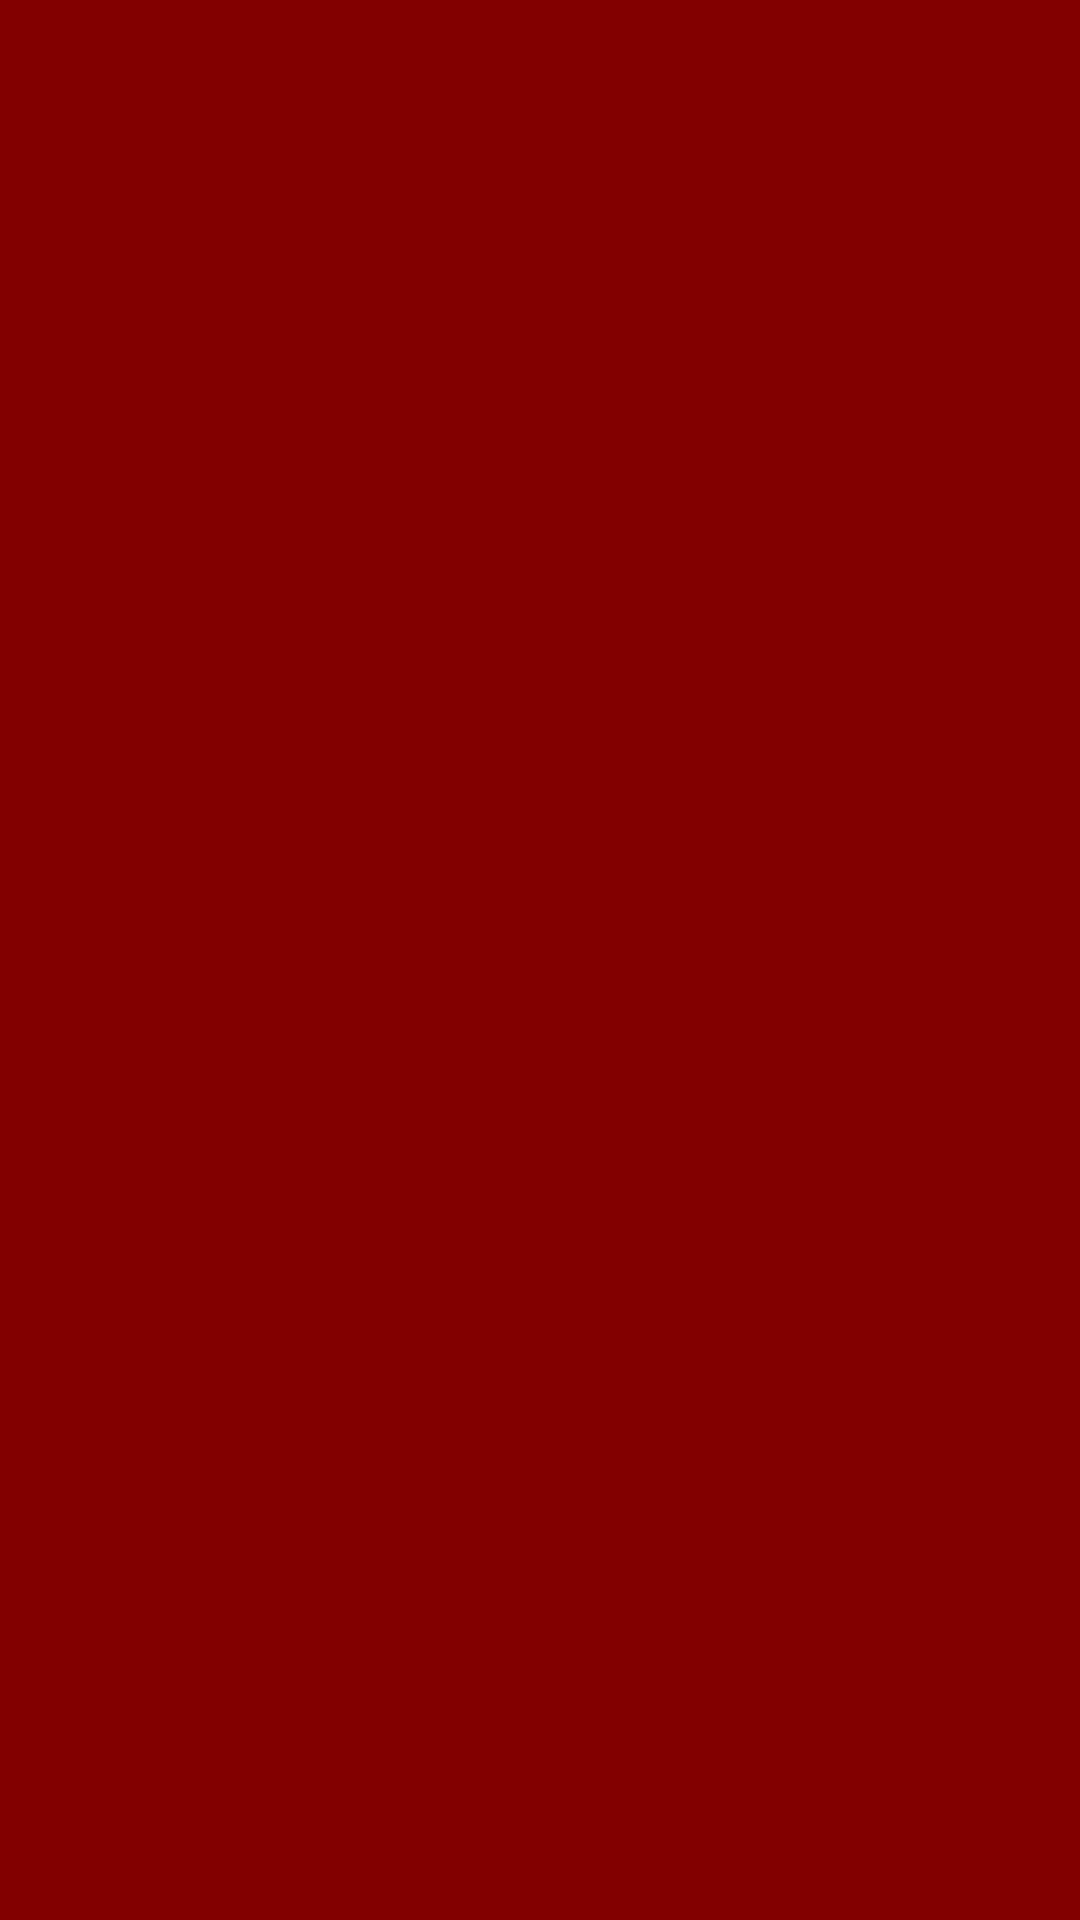 1080x1920 Maroon Web Solid Color Background